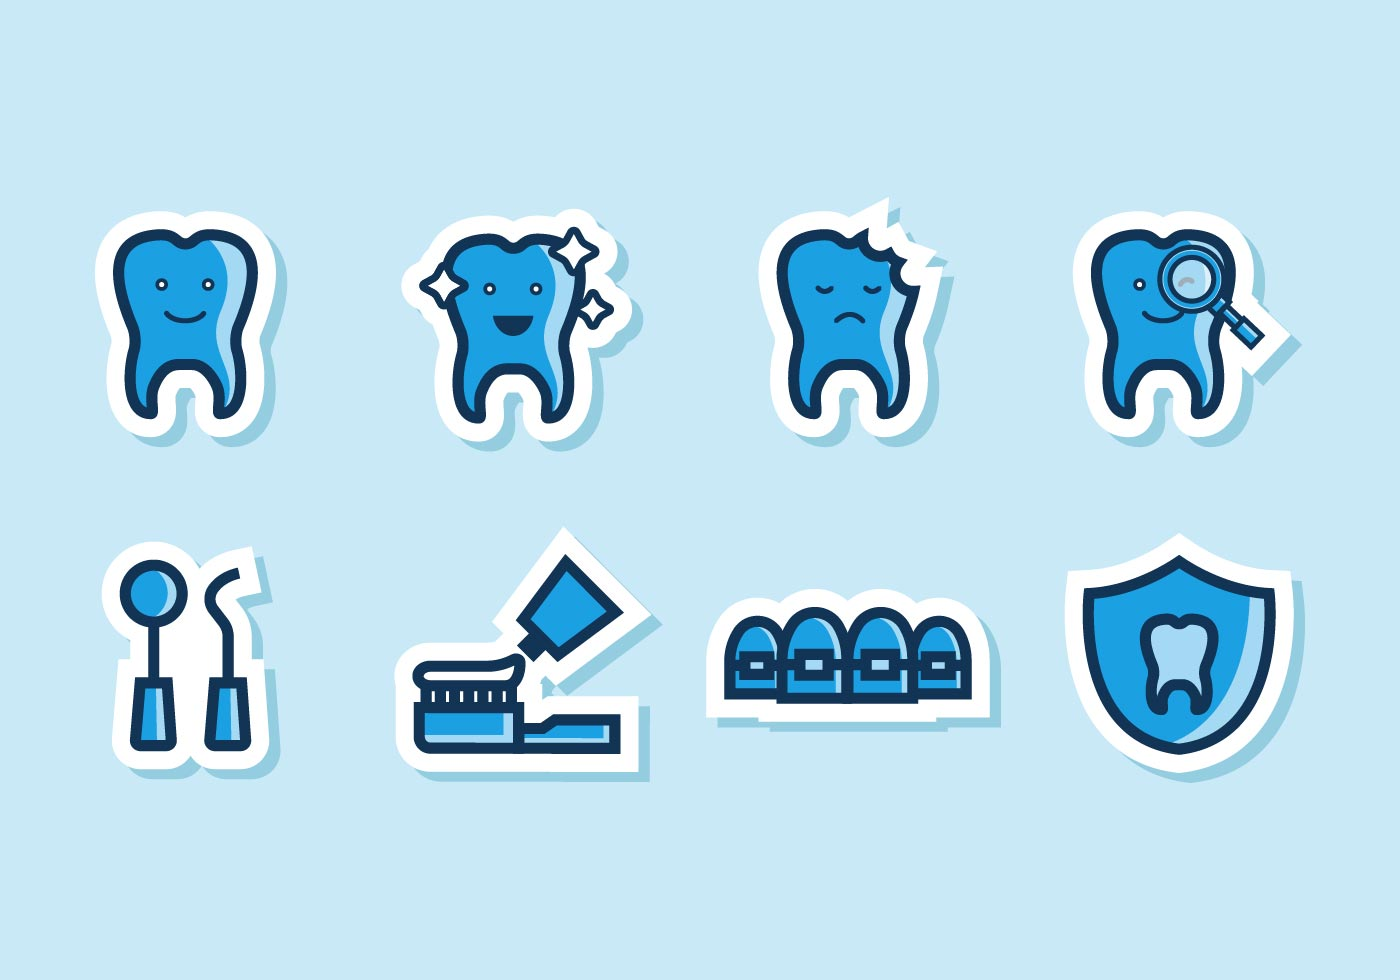 Dental icons - Download Free Vector Art, Stock Graphics & Images